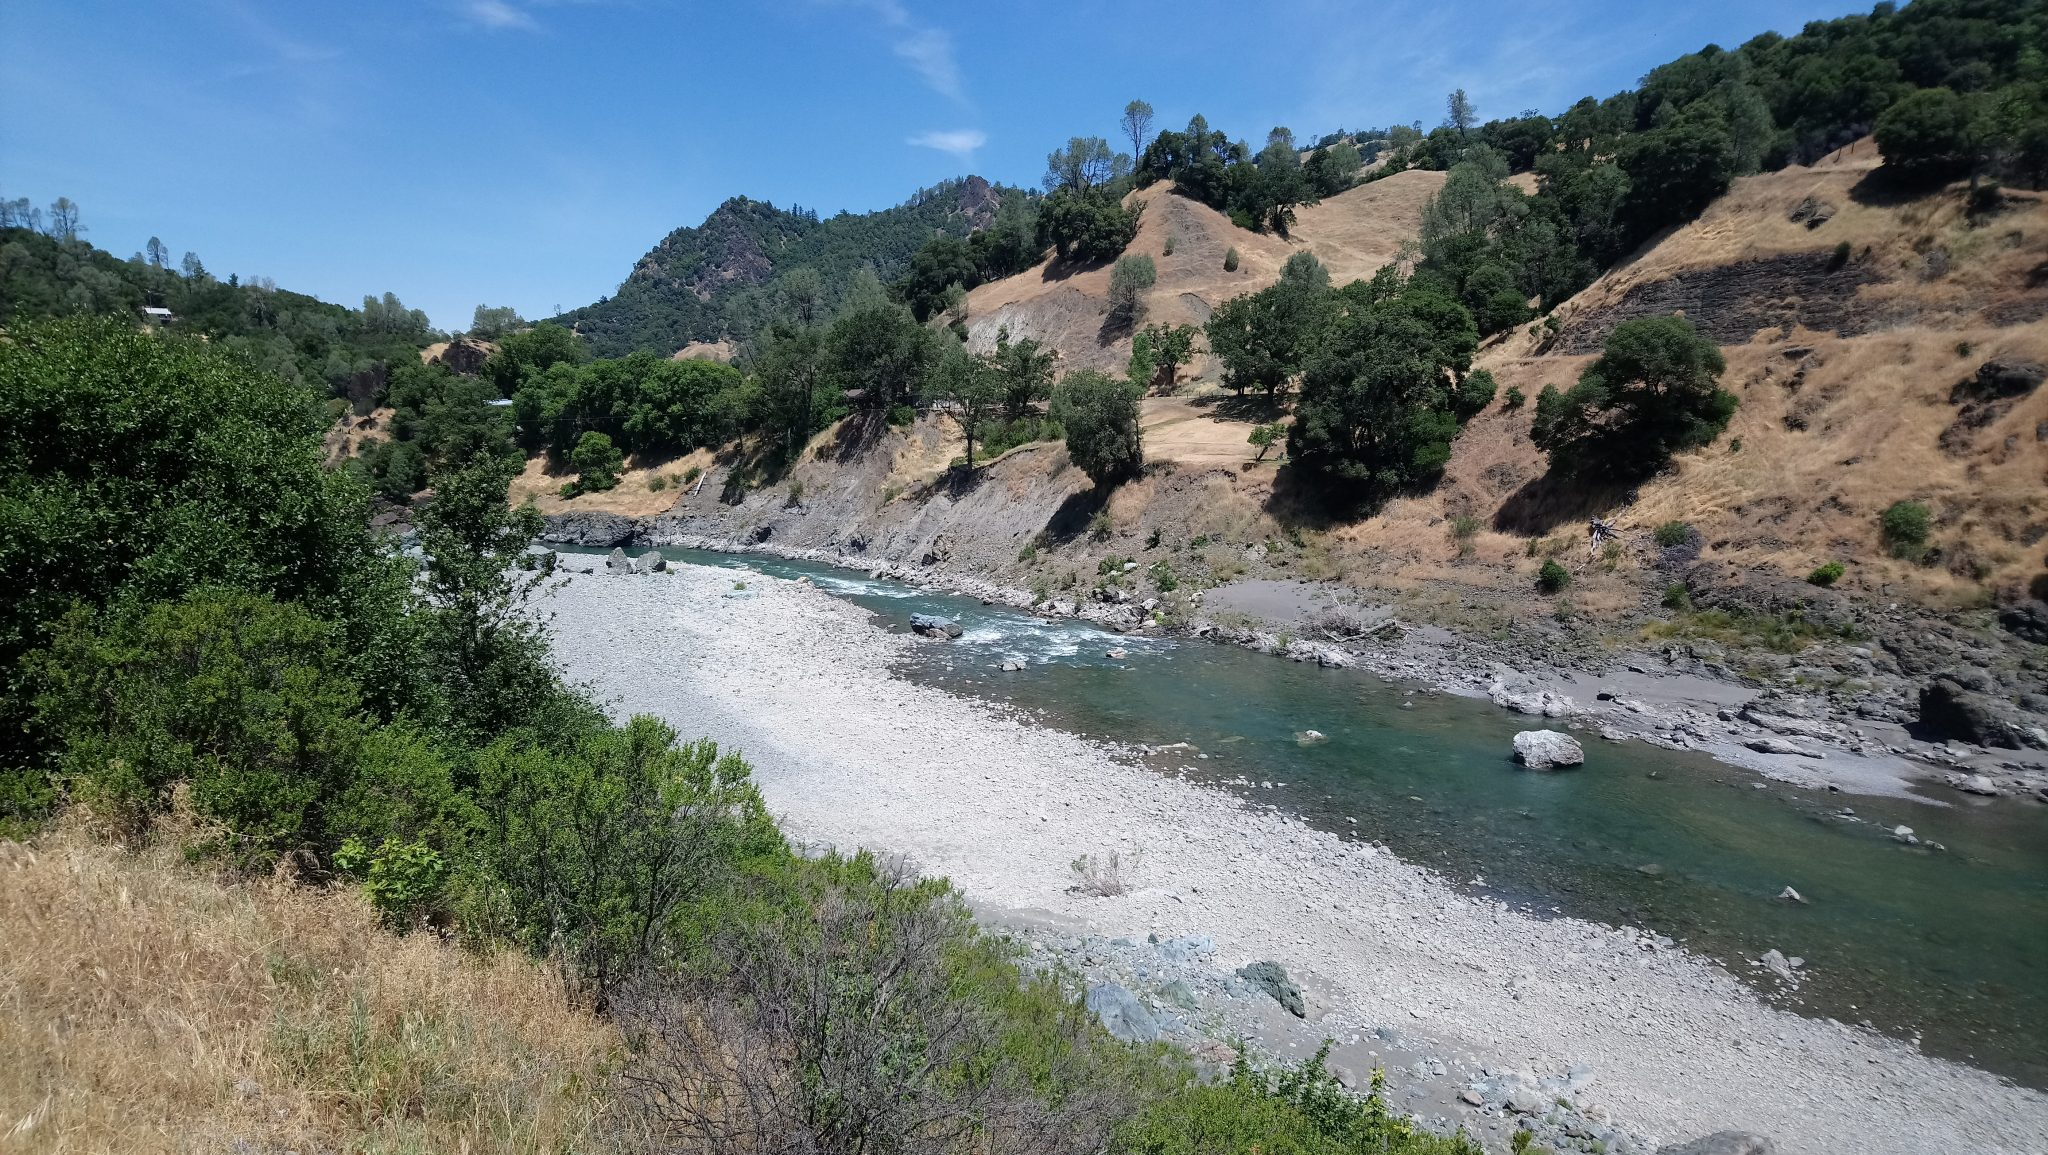 Mendocino National Forest Backing on the Eel River